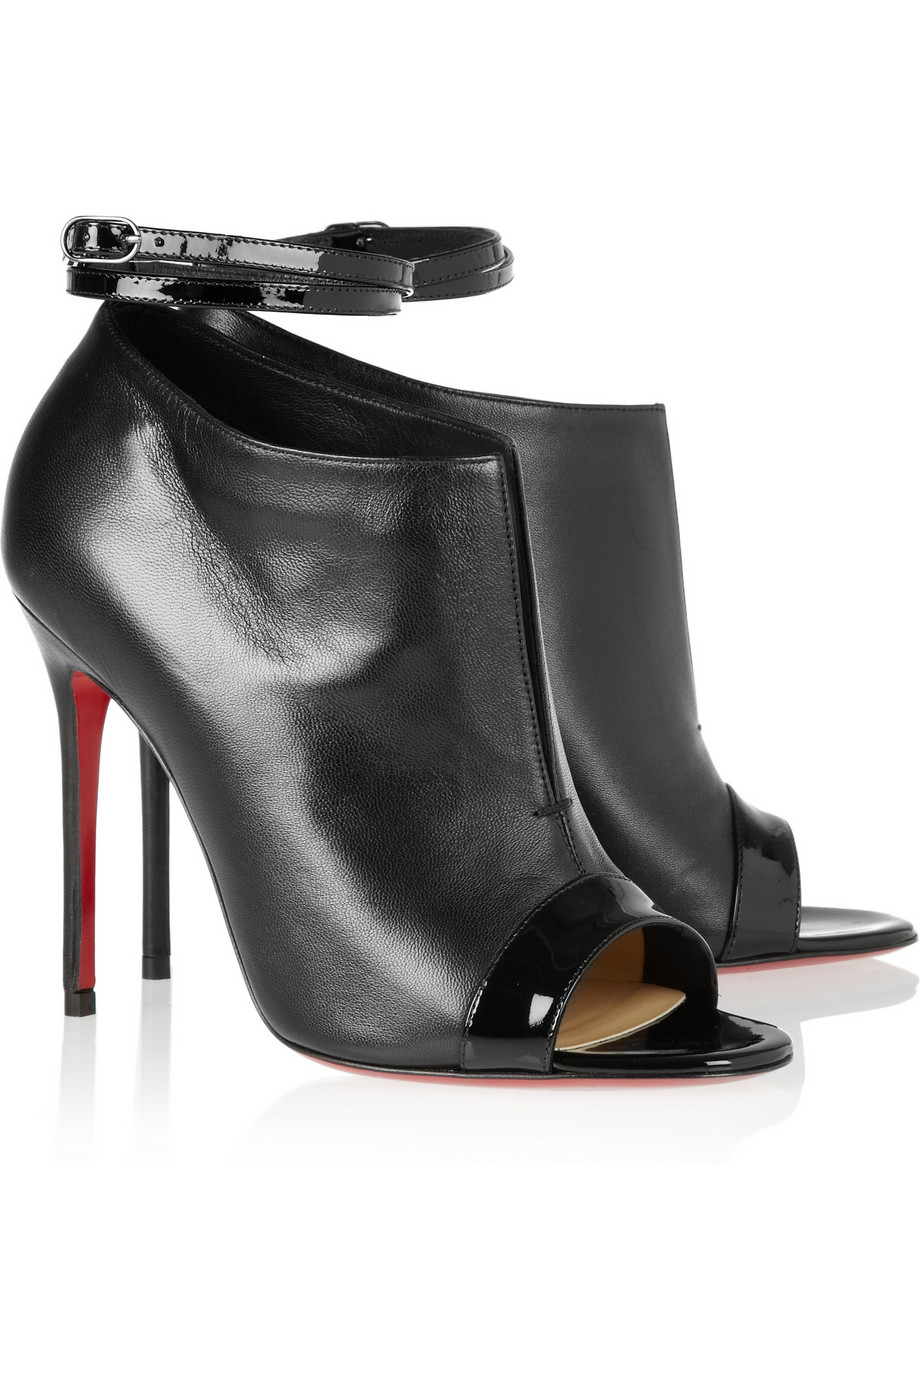 Italy Christian Louboutin Ankle Boots - Shoes Christian Louboutin Diptic 100 Leather Ankle Boots Black